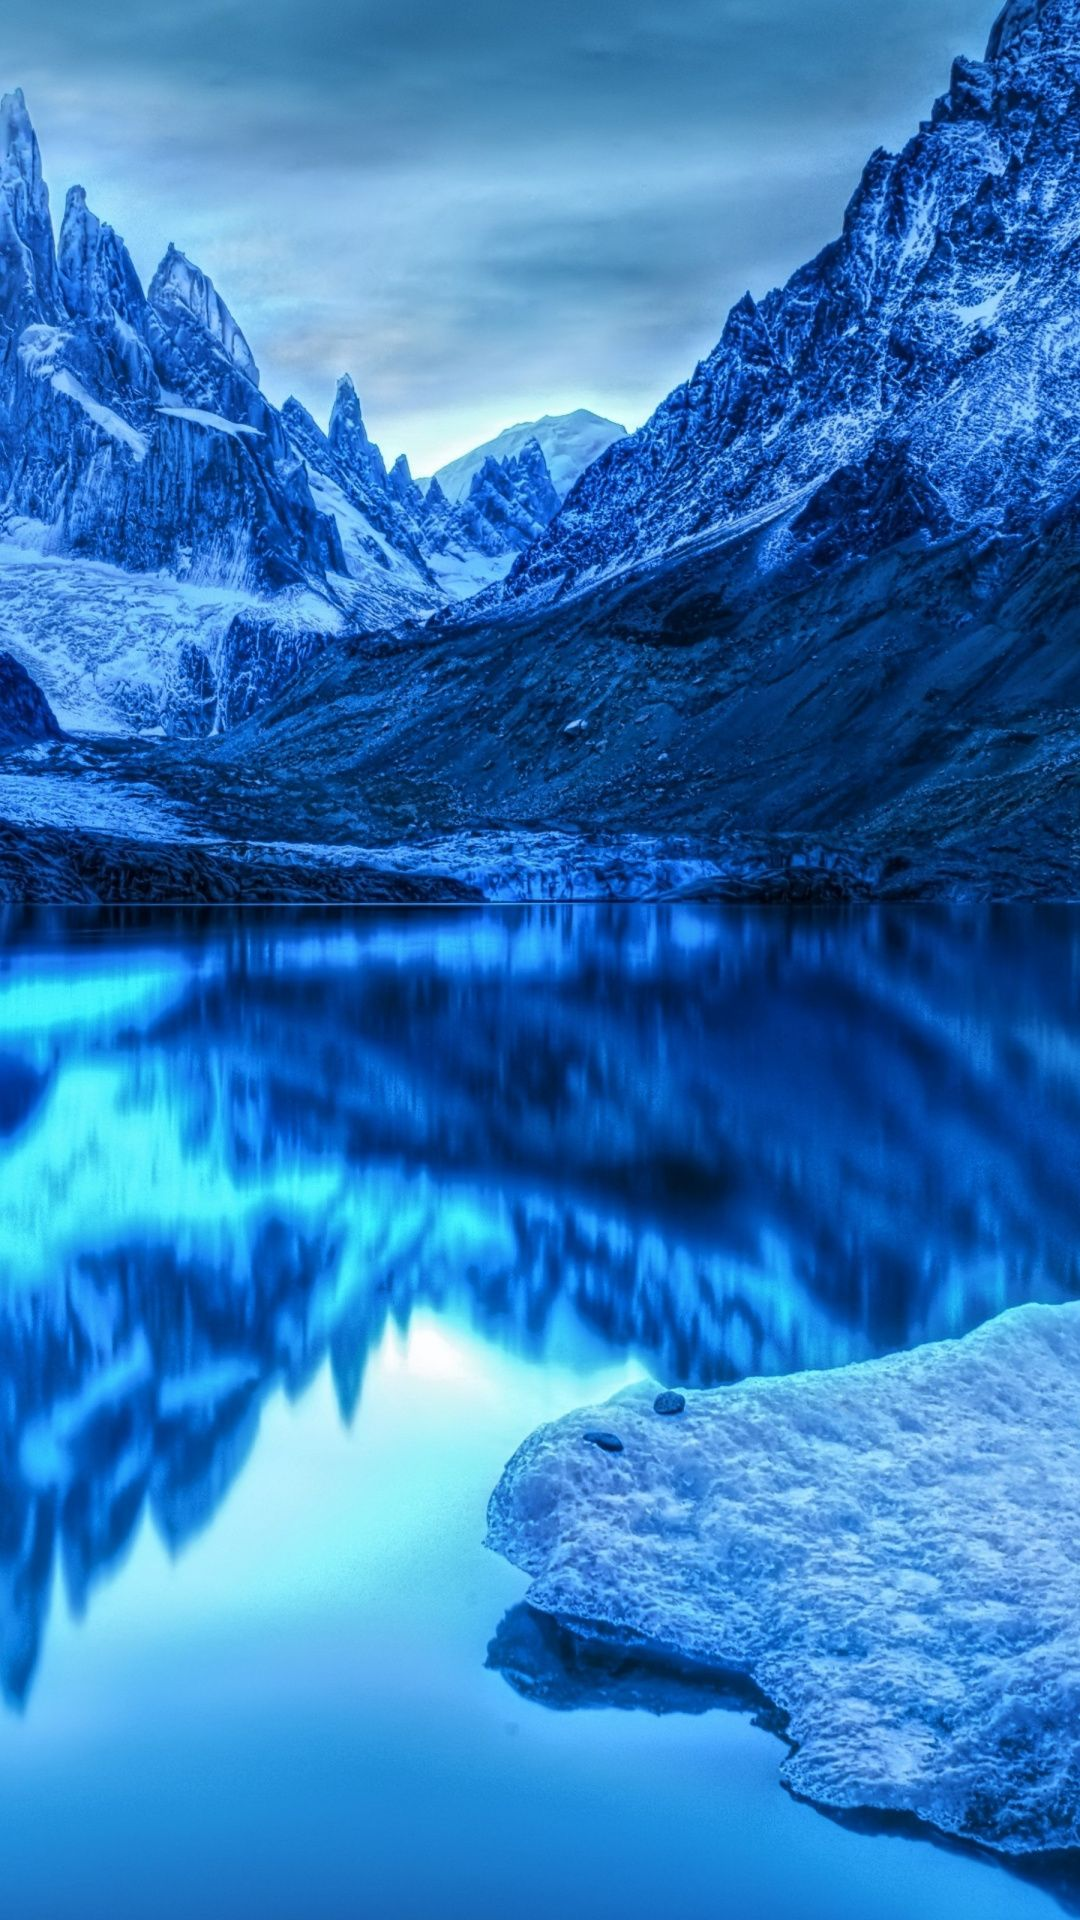 Wallpaper For Iphone Mountain Blue